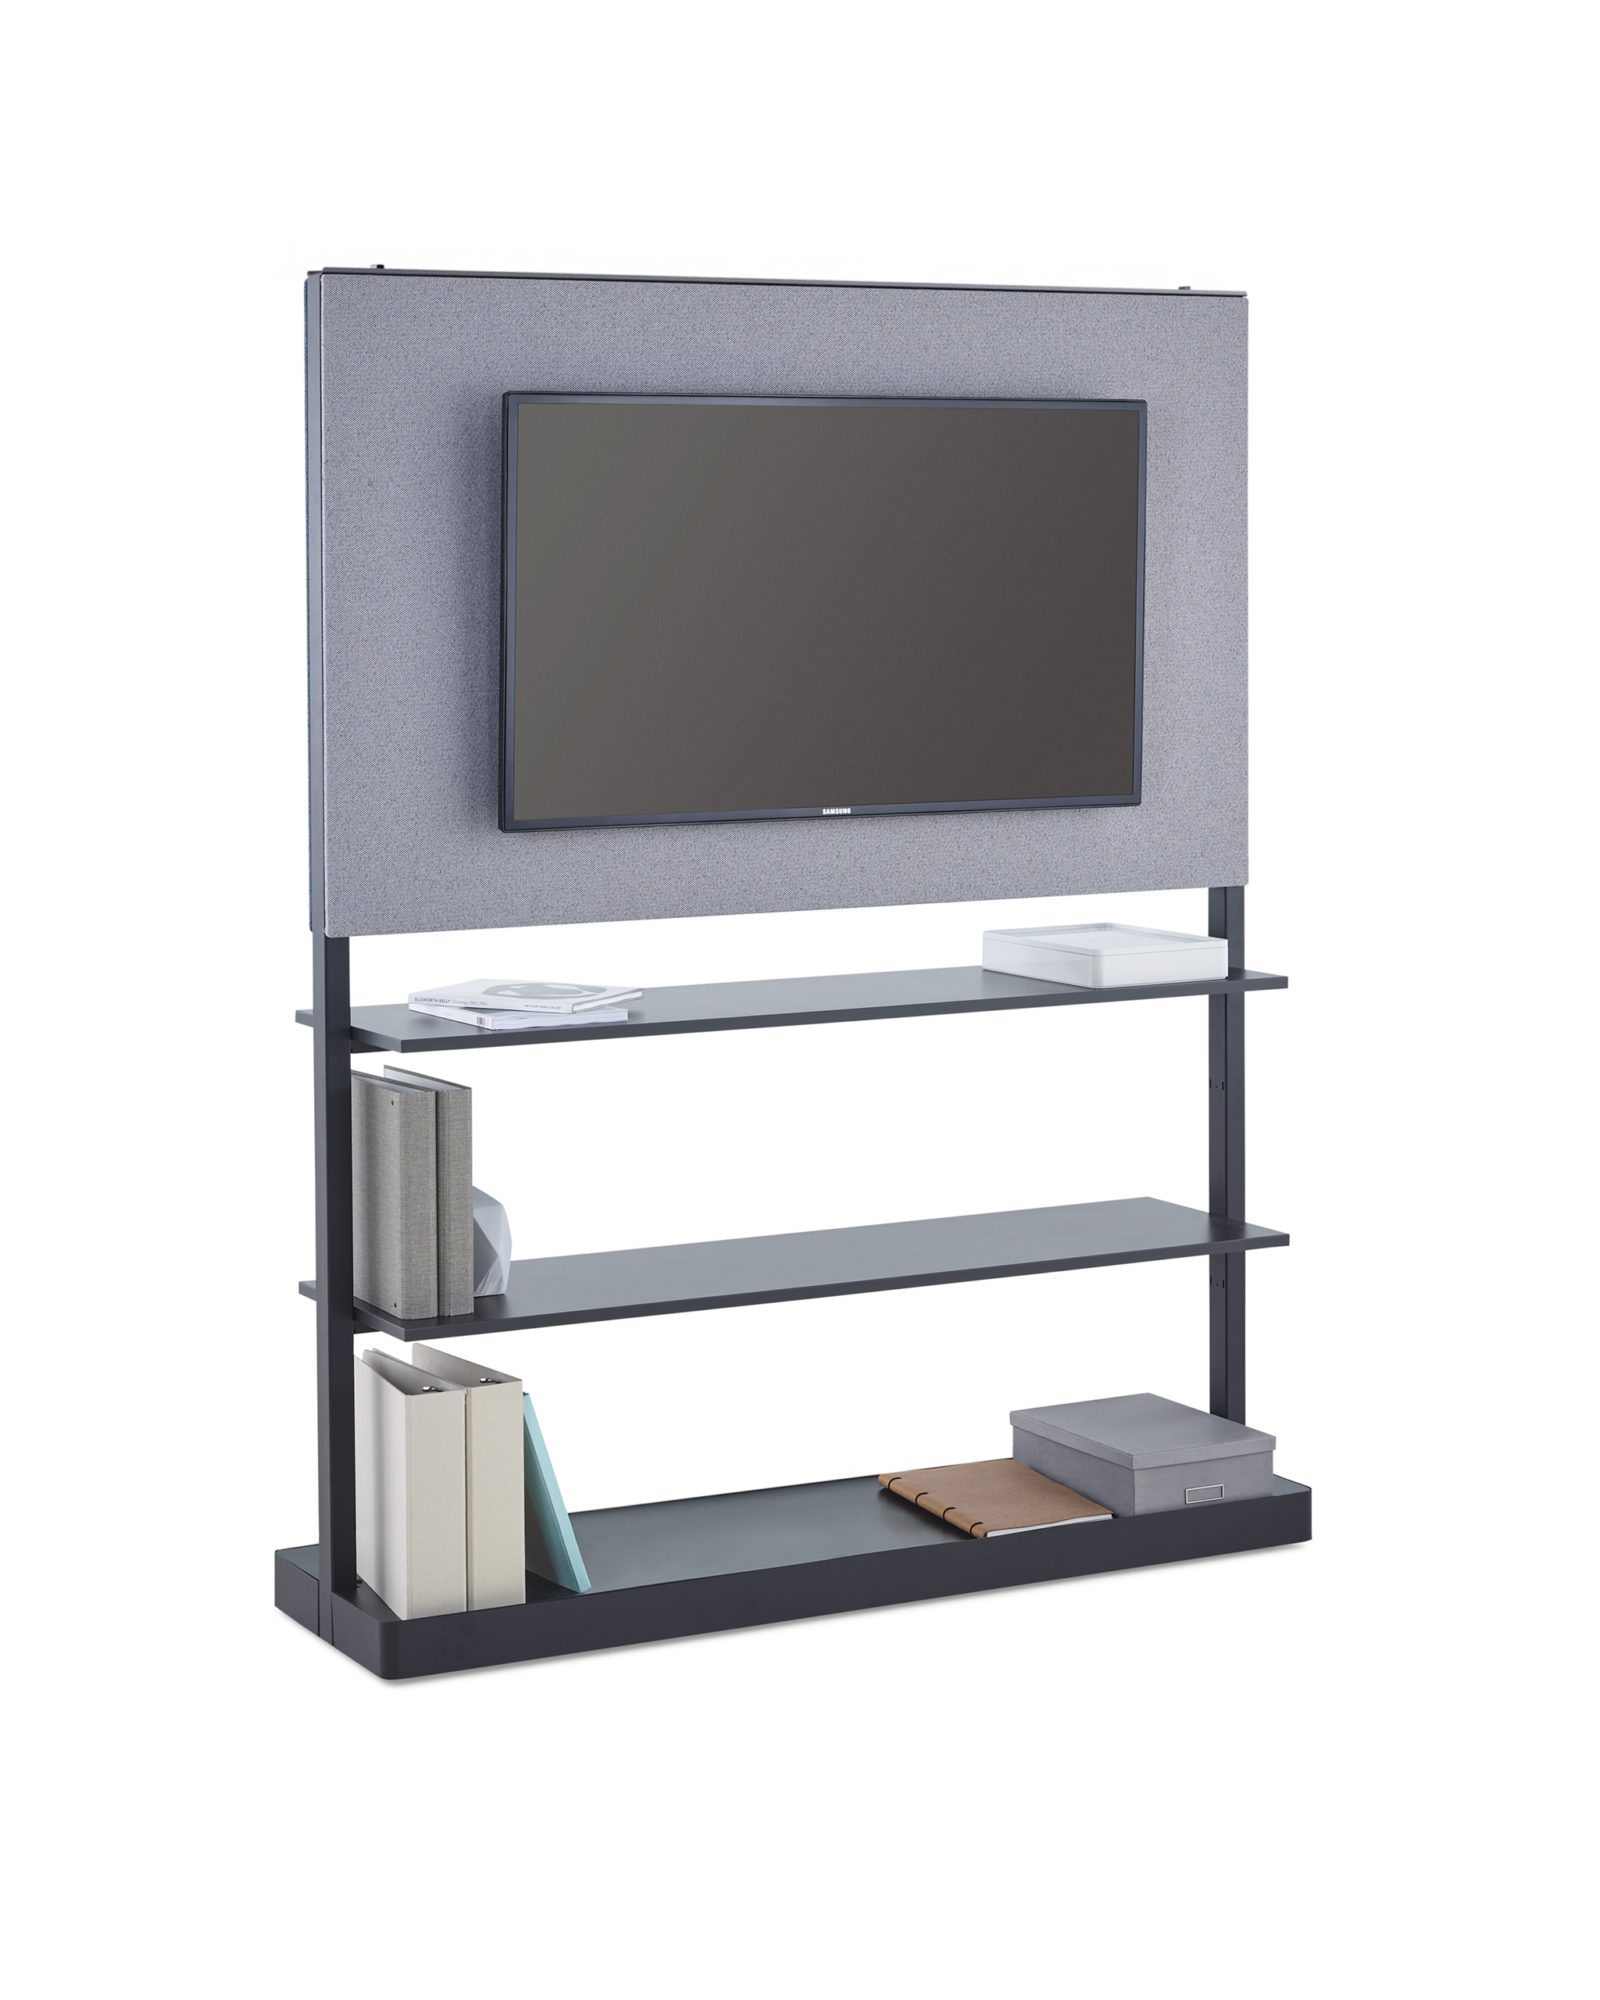 An Agile Wall with a monitor mounted on a grey fabric tile with 3 shelves storing office equipment below.